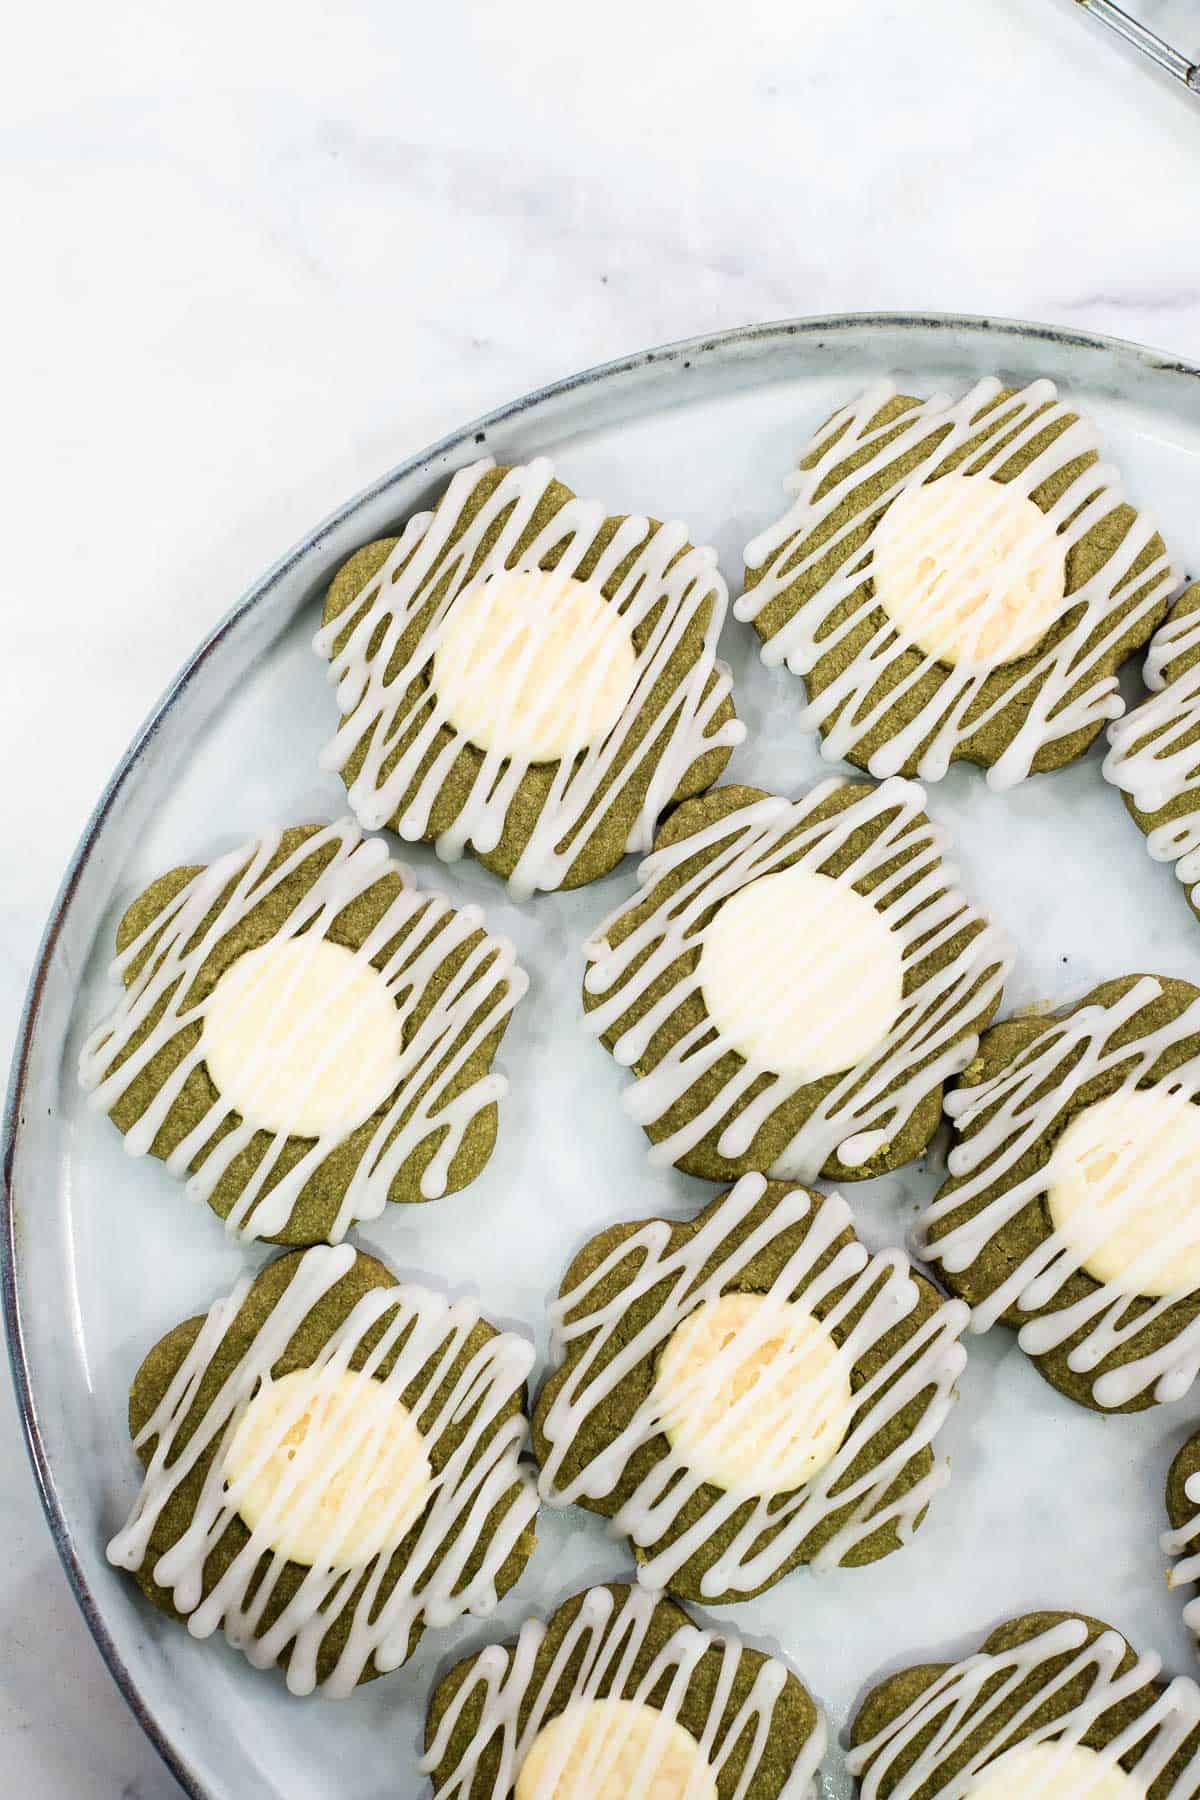 Close up view of a plate filled with green flower shaped cookies with white centers and icing drizzle